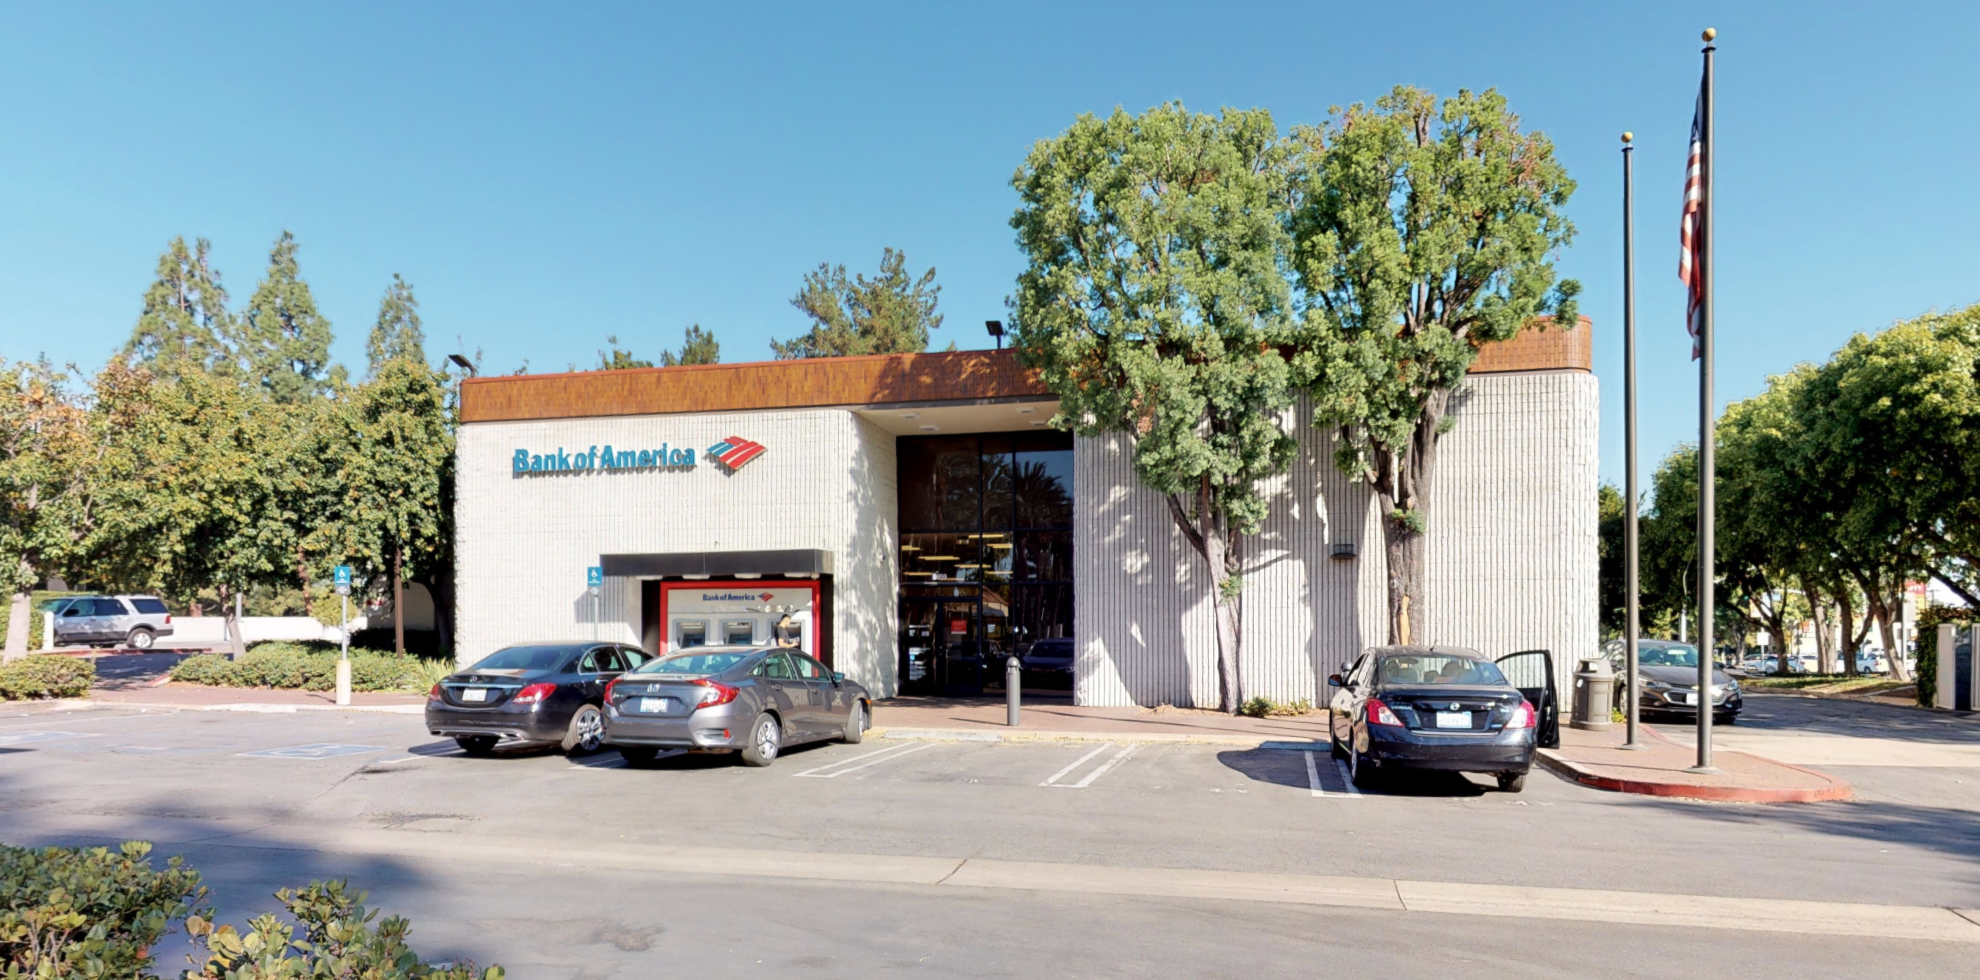 Bank of America financial center with walk-up ATM | 5959 Canoga Ave, Woodland Hills, CA 91367